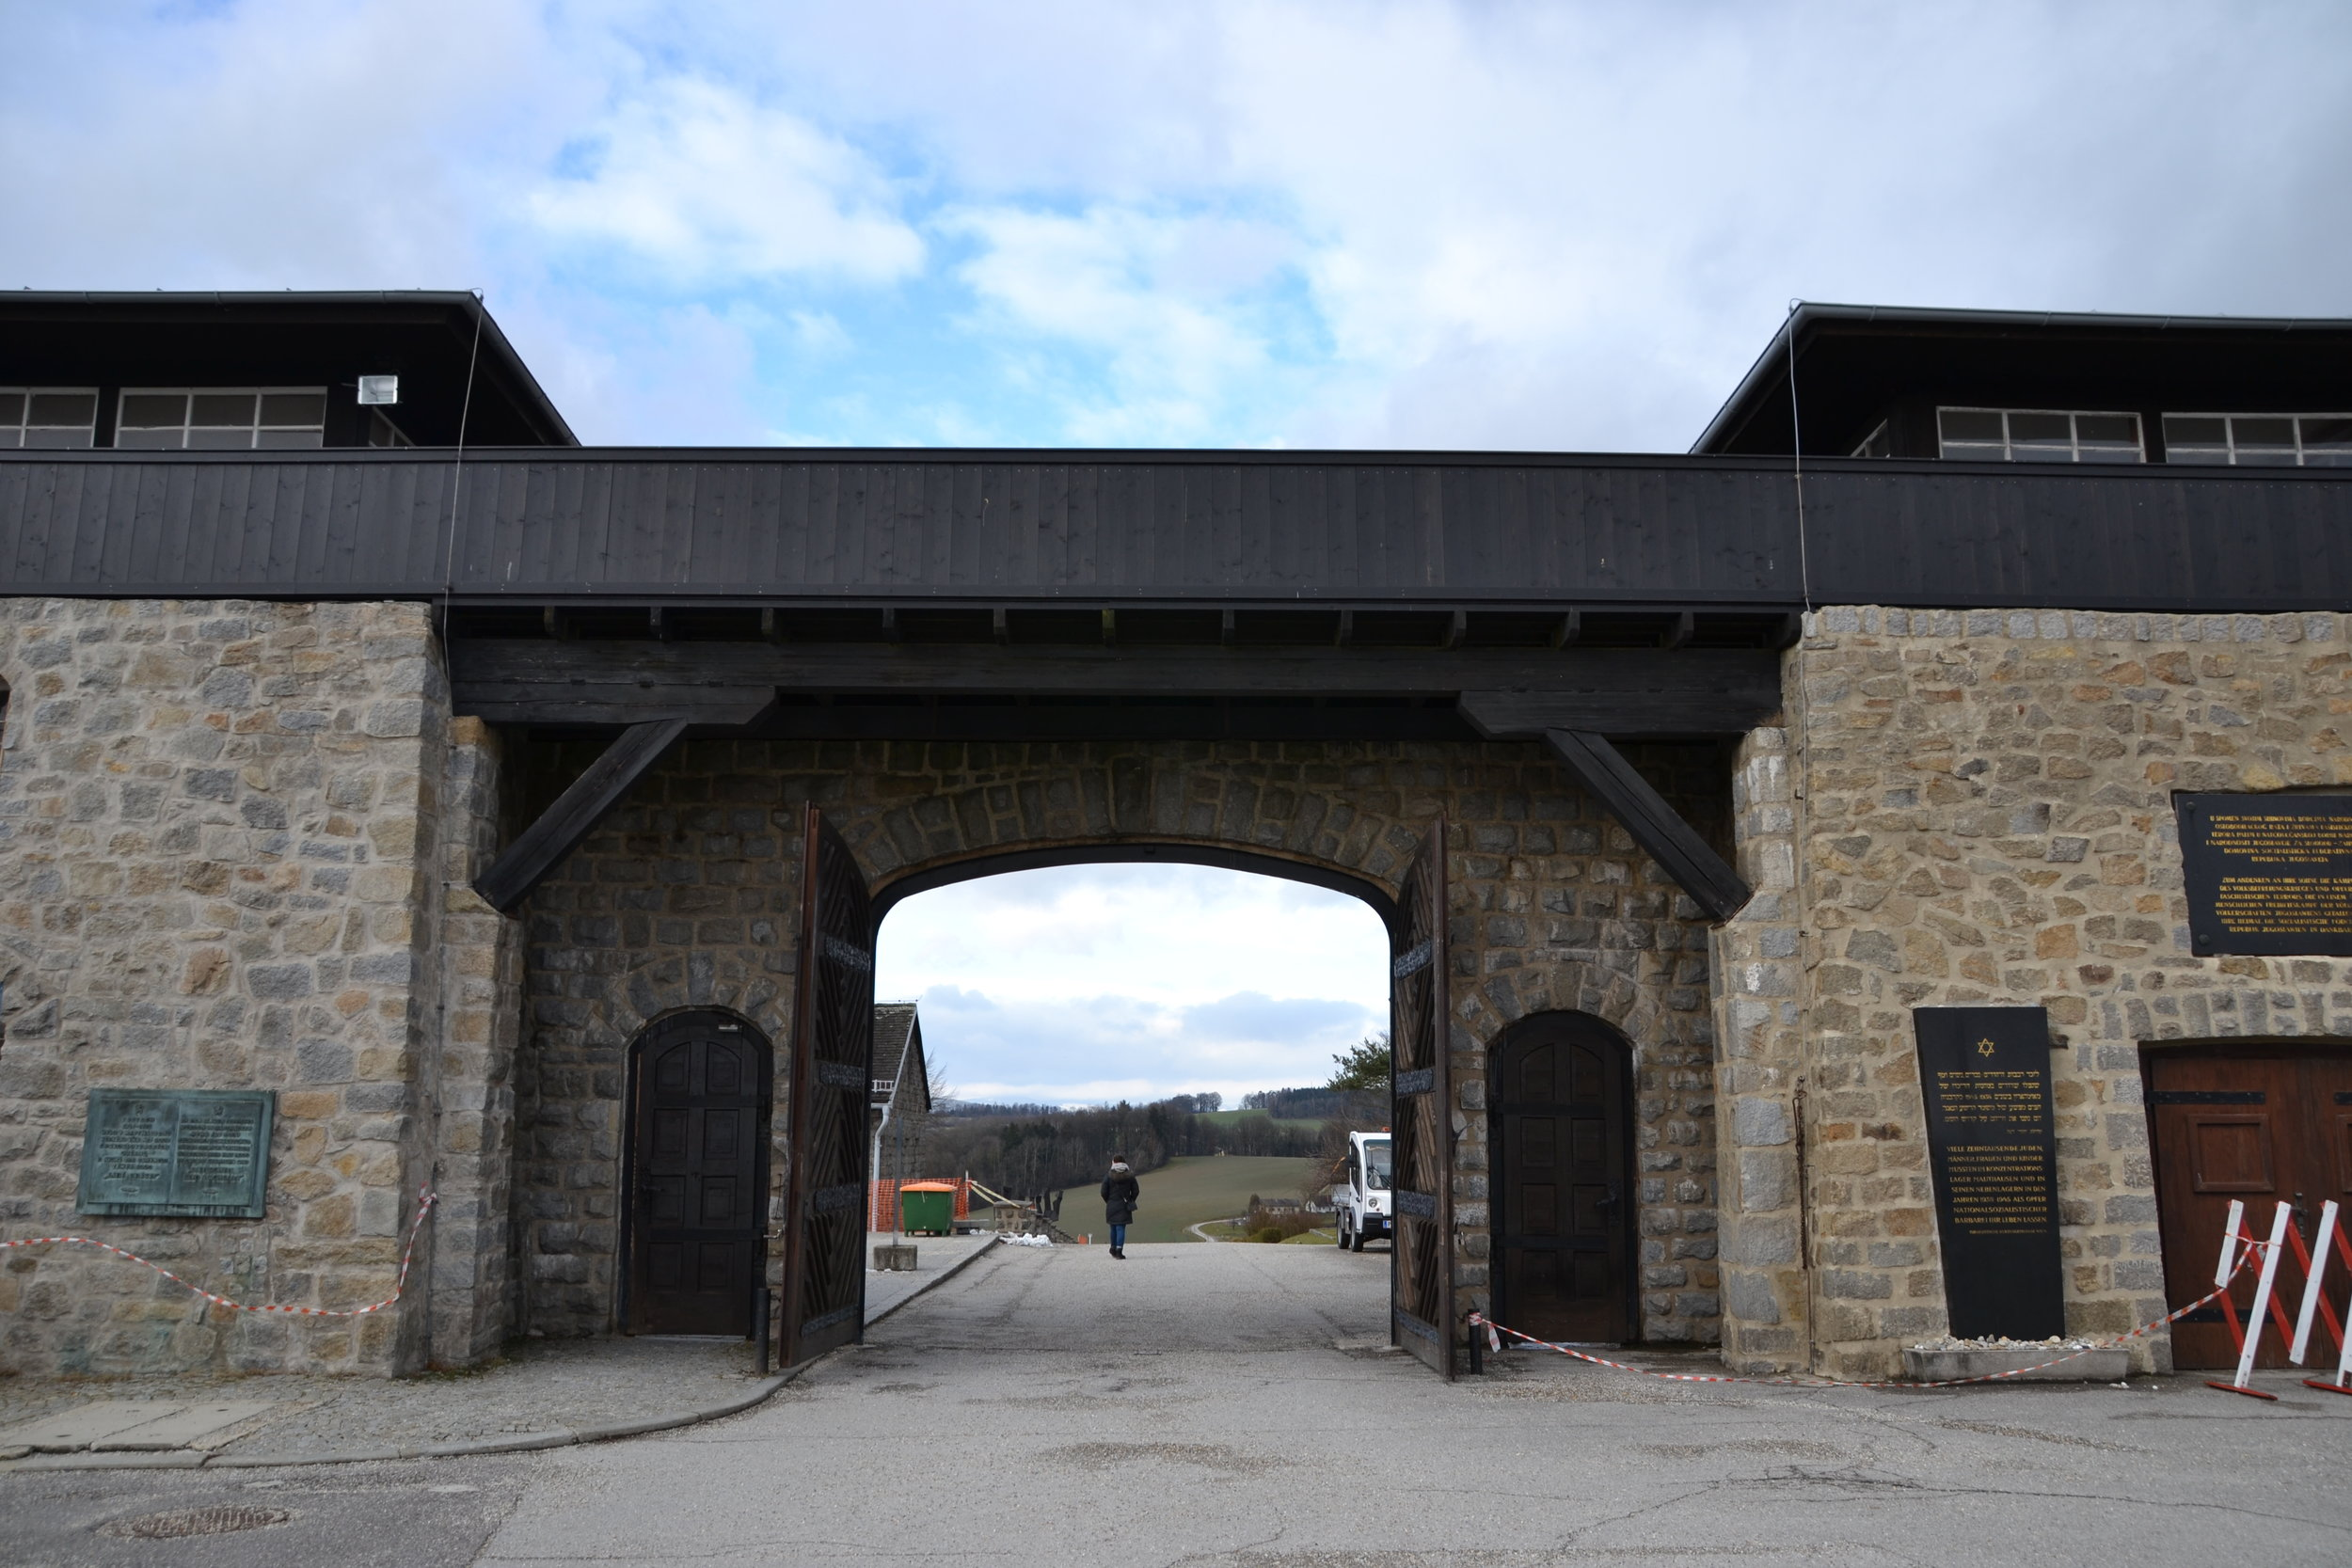 The entrance to the Concentration Camp